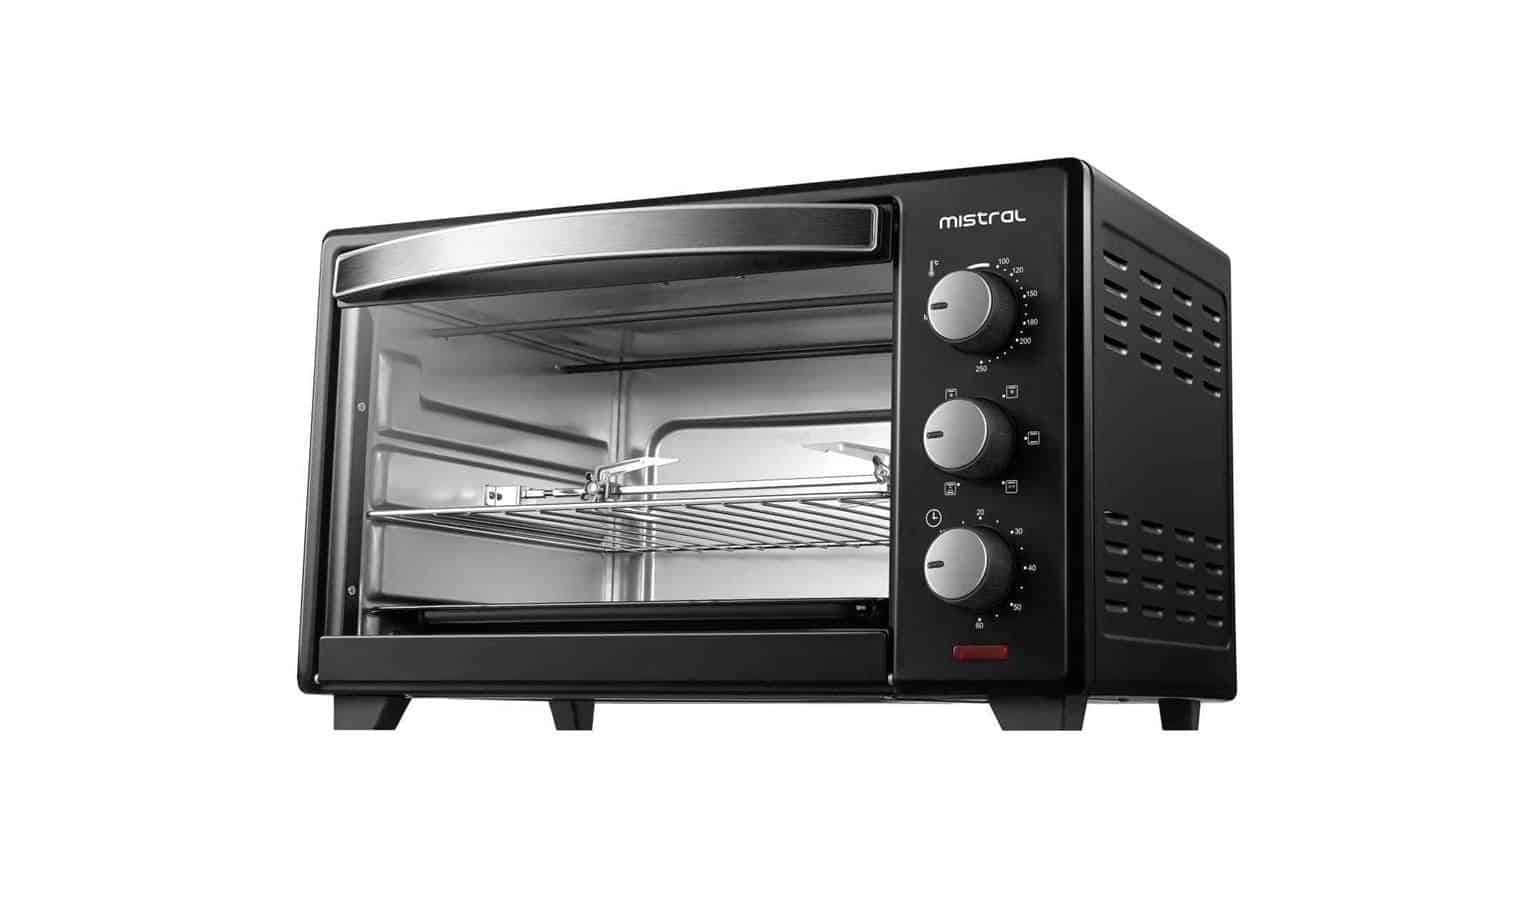 Mistral MO208 20L Electric Oven | Harvey Norman Singapore